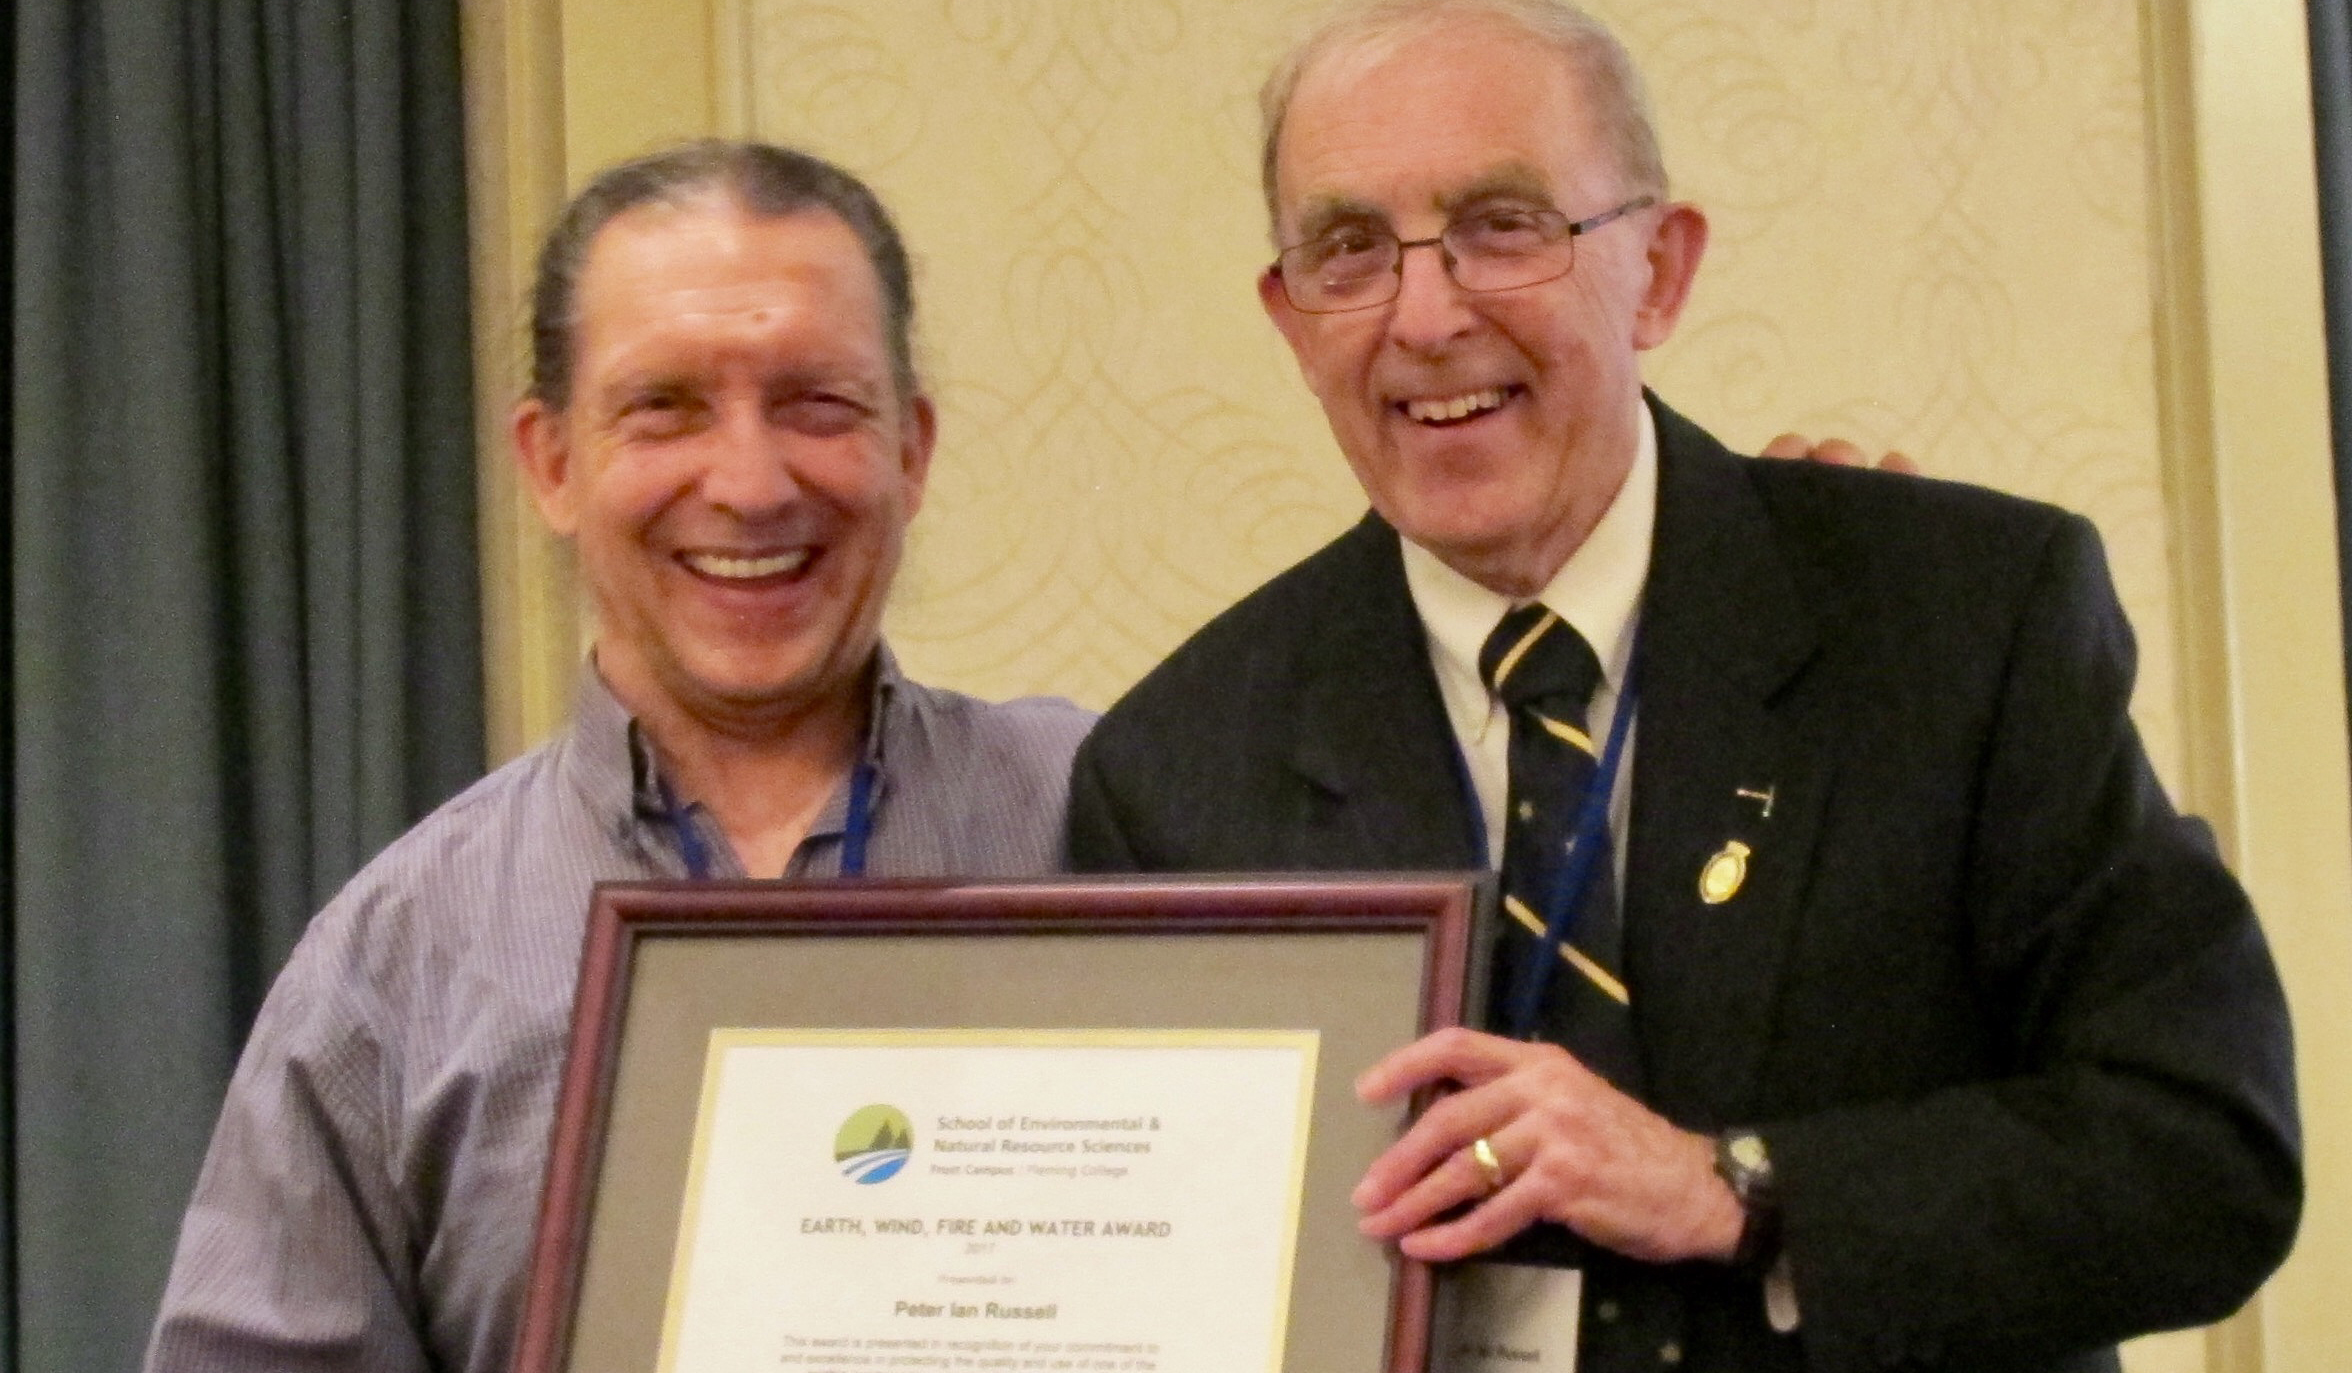 Bill Clarke and Peter Russel with framed award